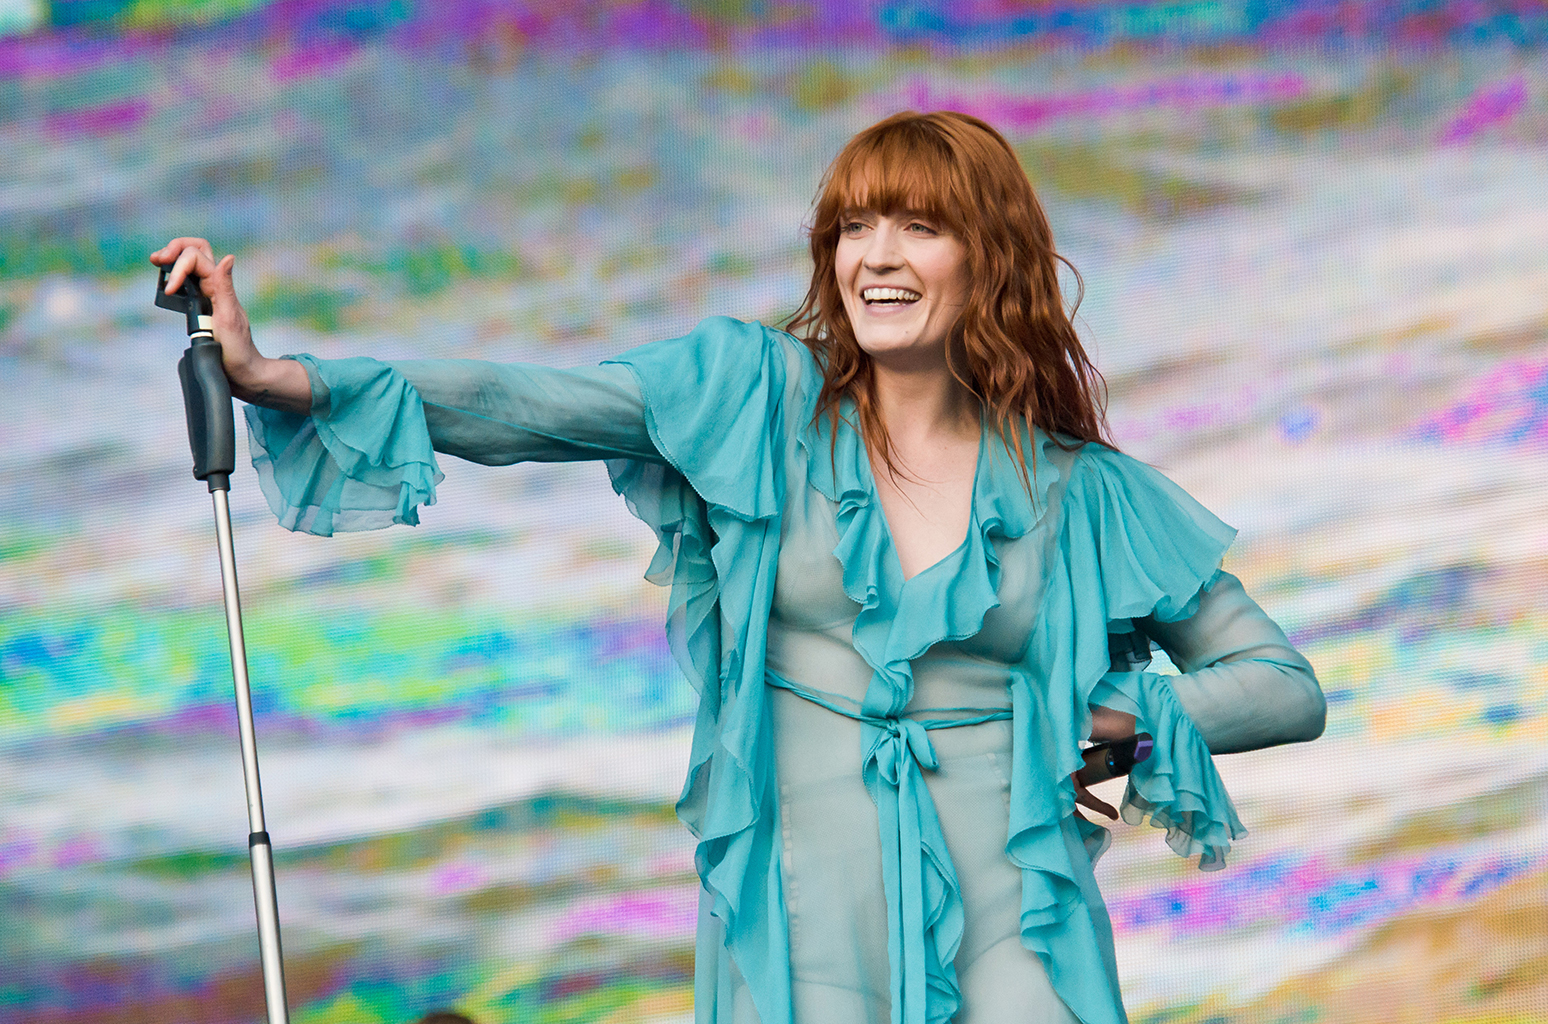 David Bowie 'Heroes' Documentary: Florence Welch Hosts BBC Special for Album's 40th Anniversary | Billboard